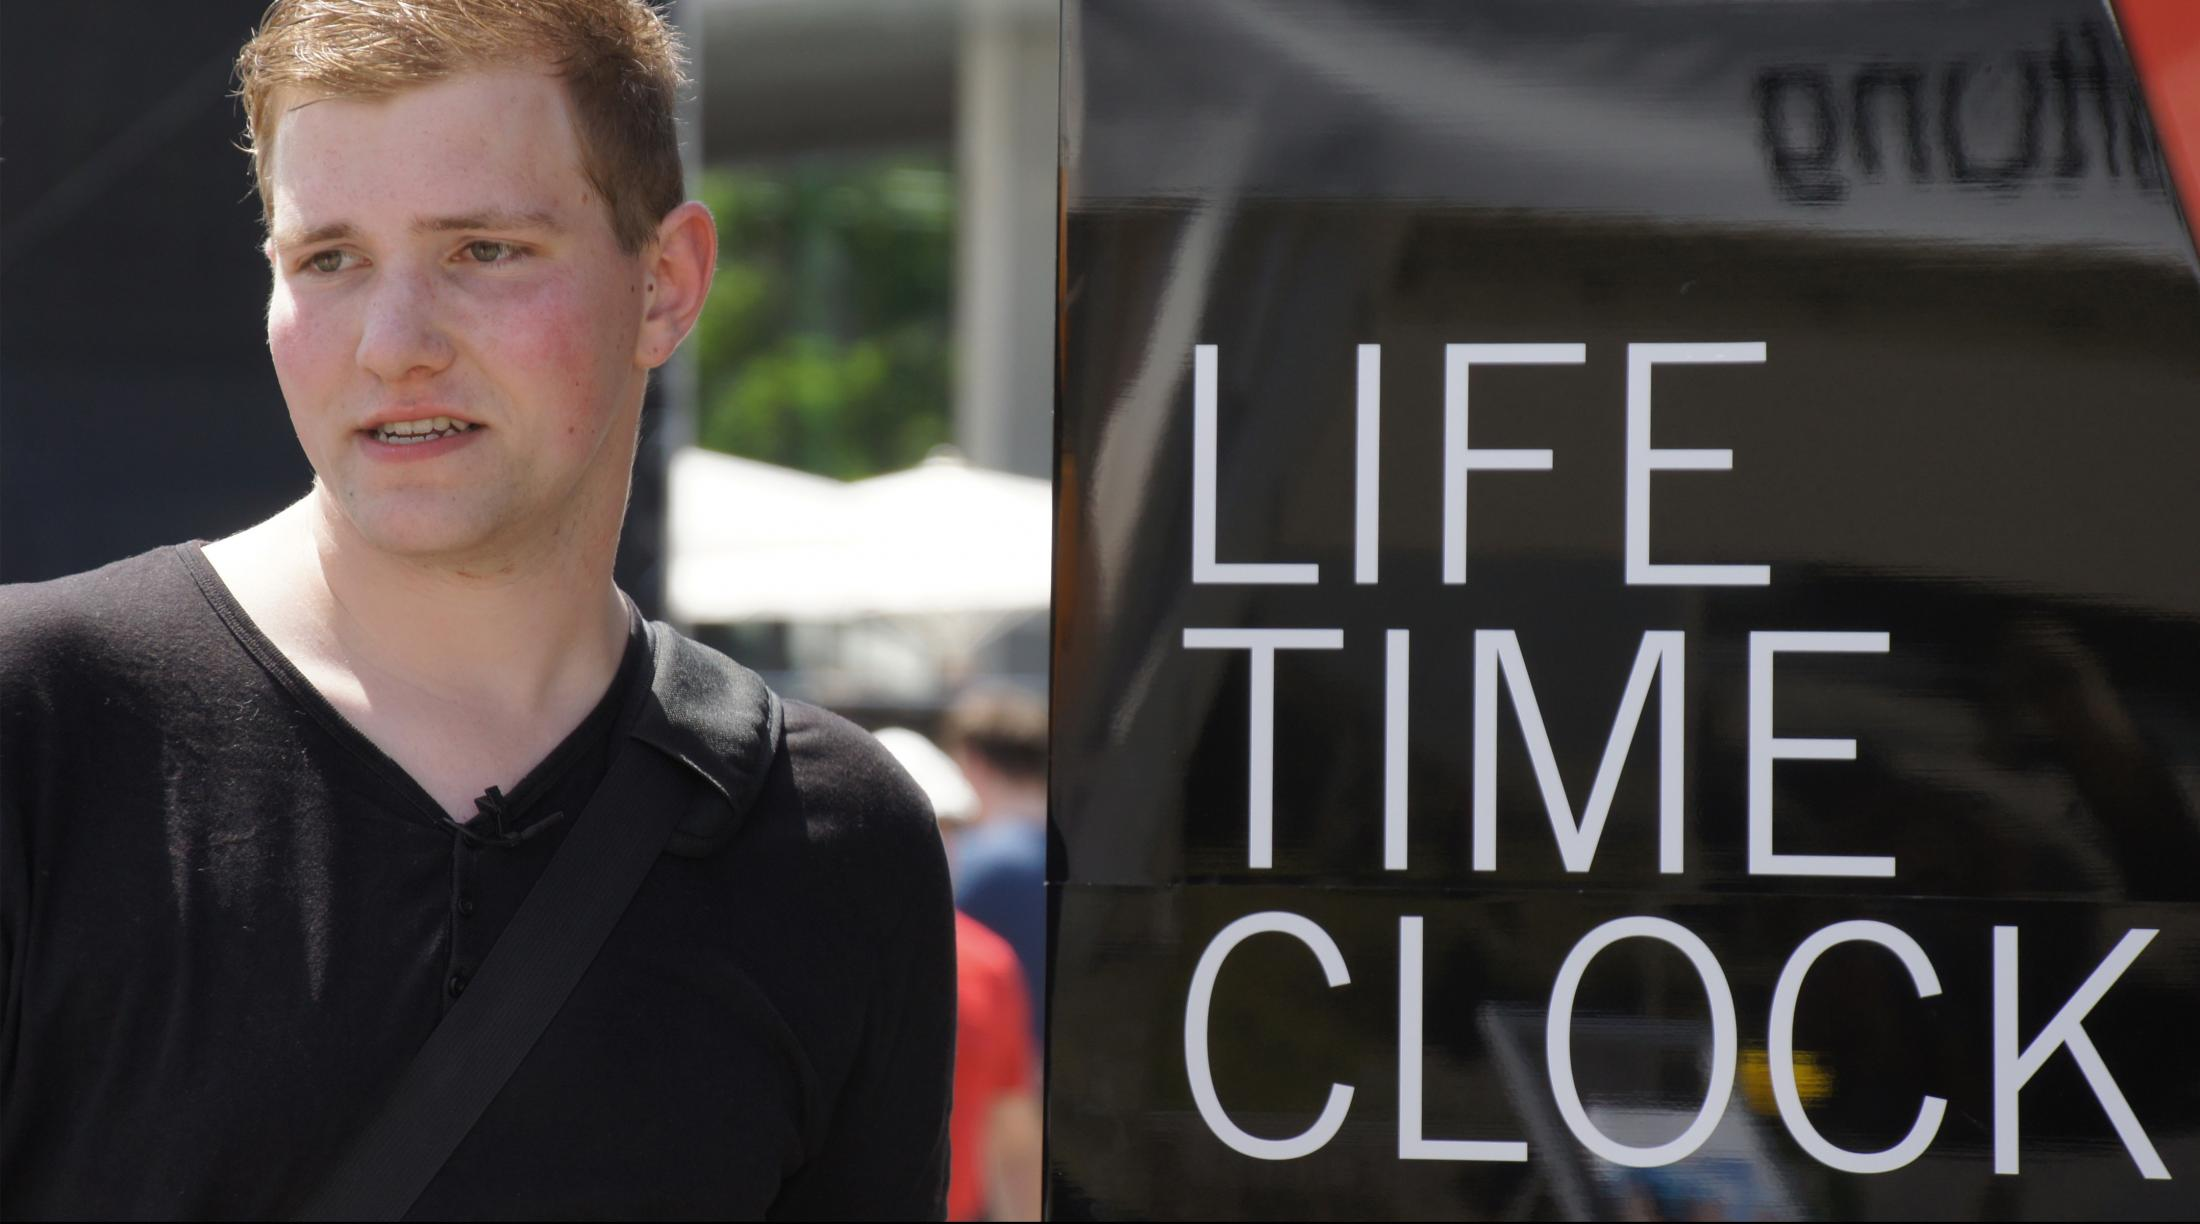 Image Media for Life Time Clock